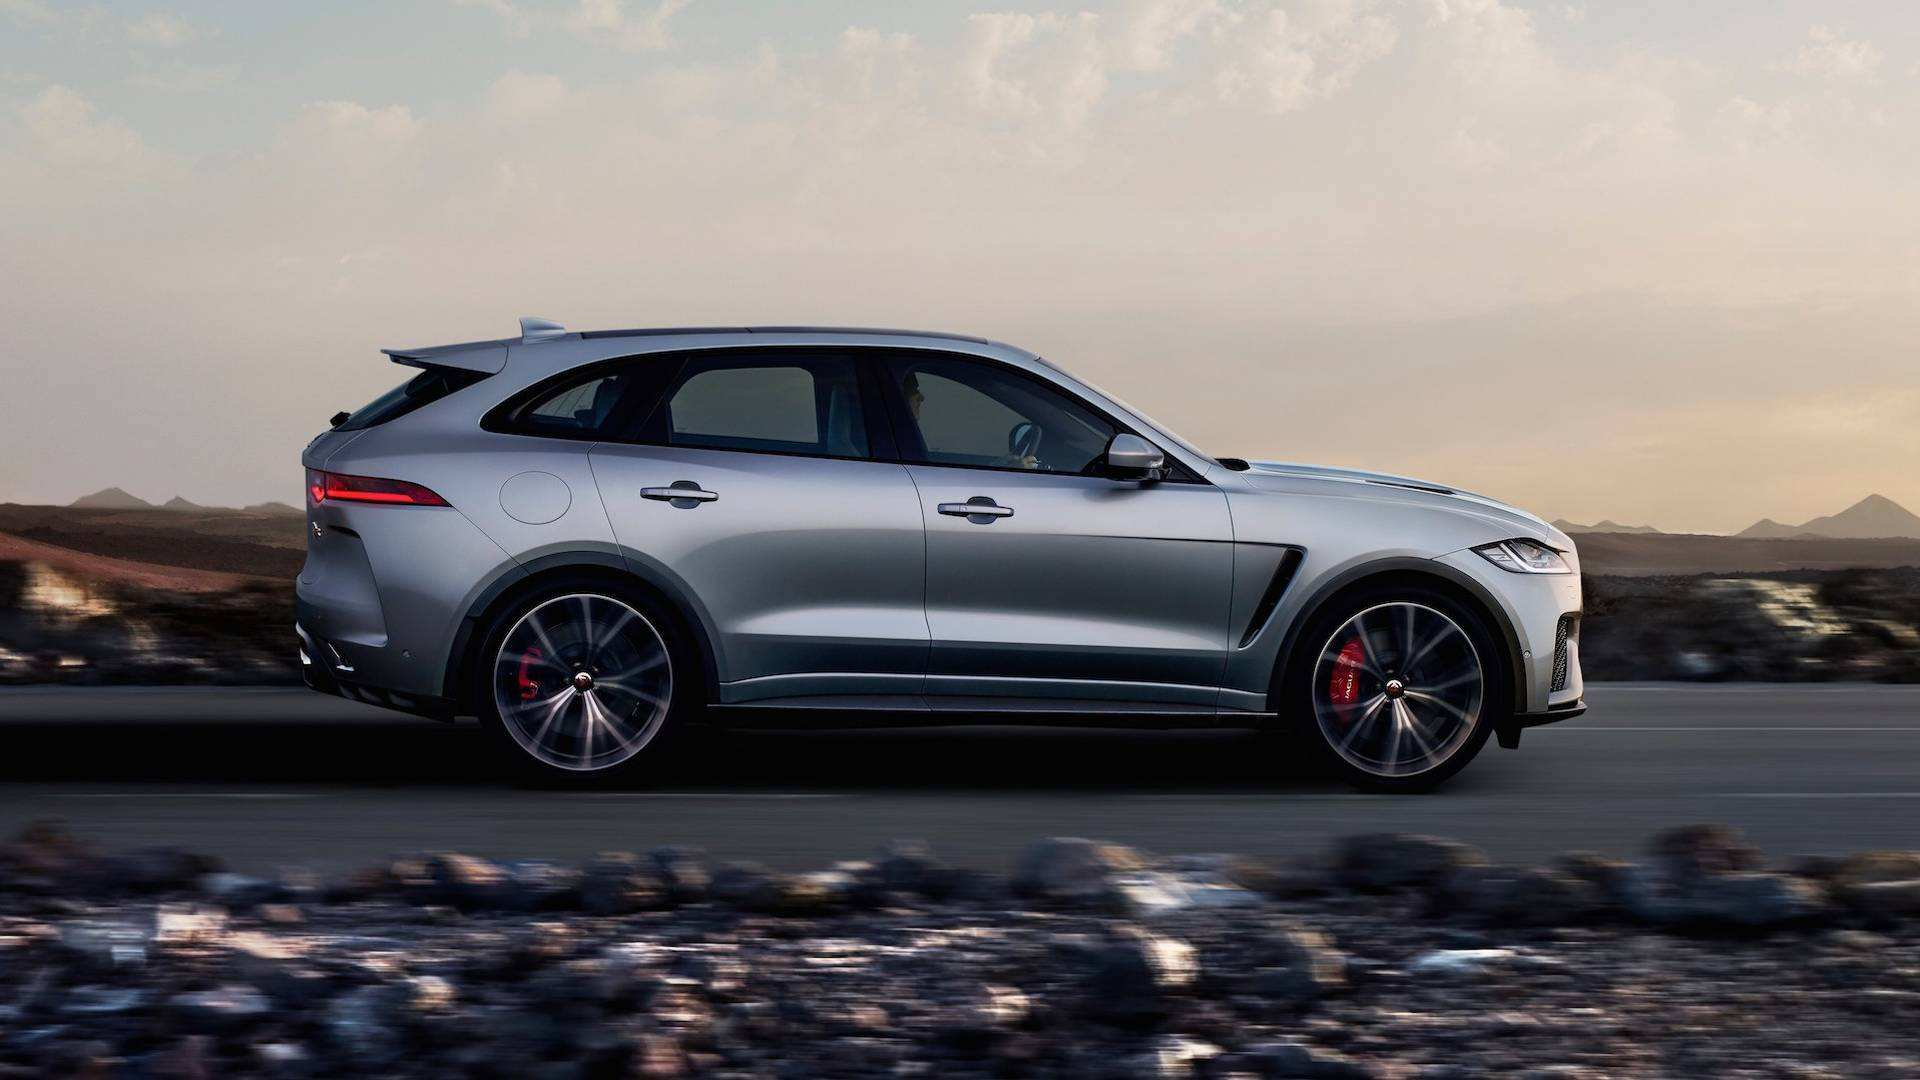 31 All New 2020 Jaguar Suv Exterior Engine with 2020 Jaguar Suv Exterior